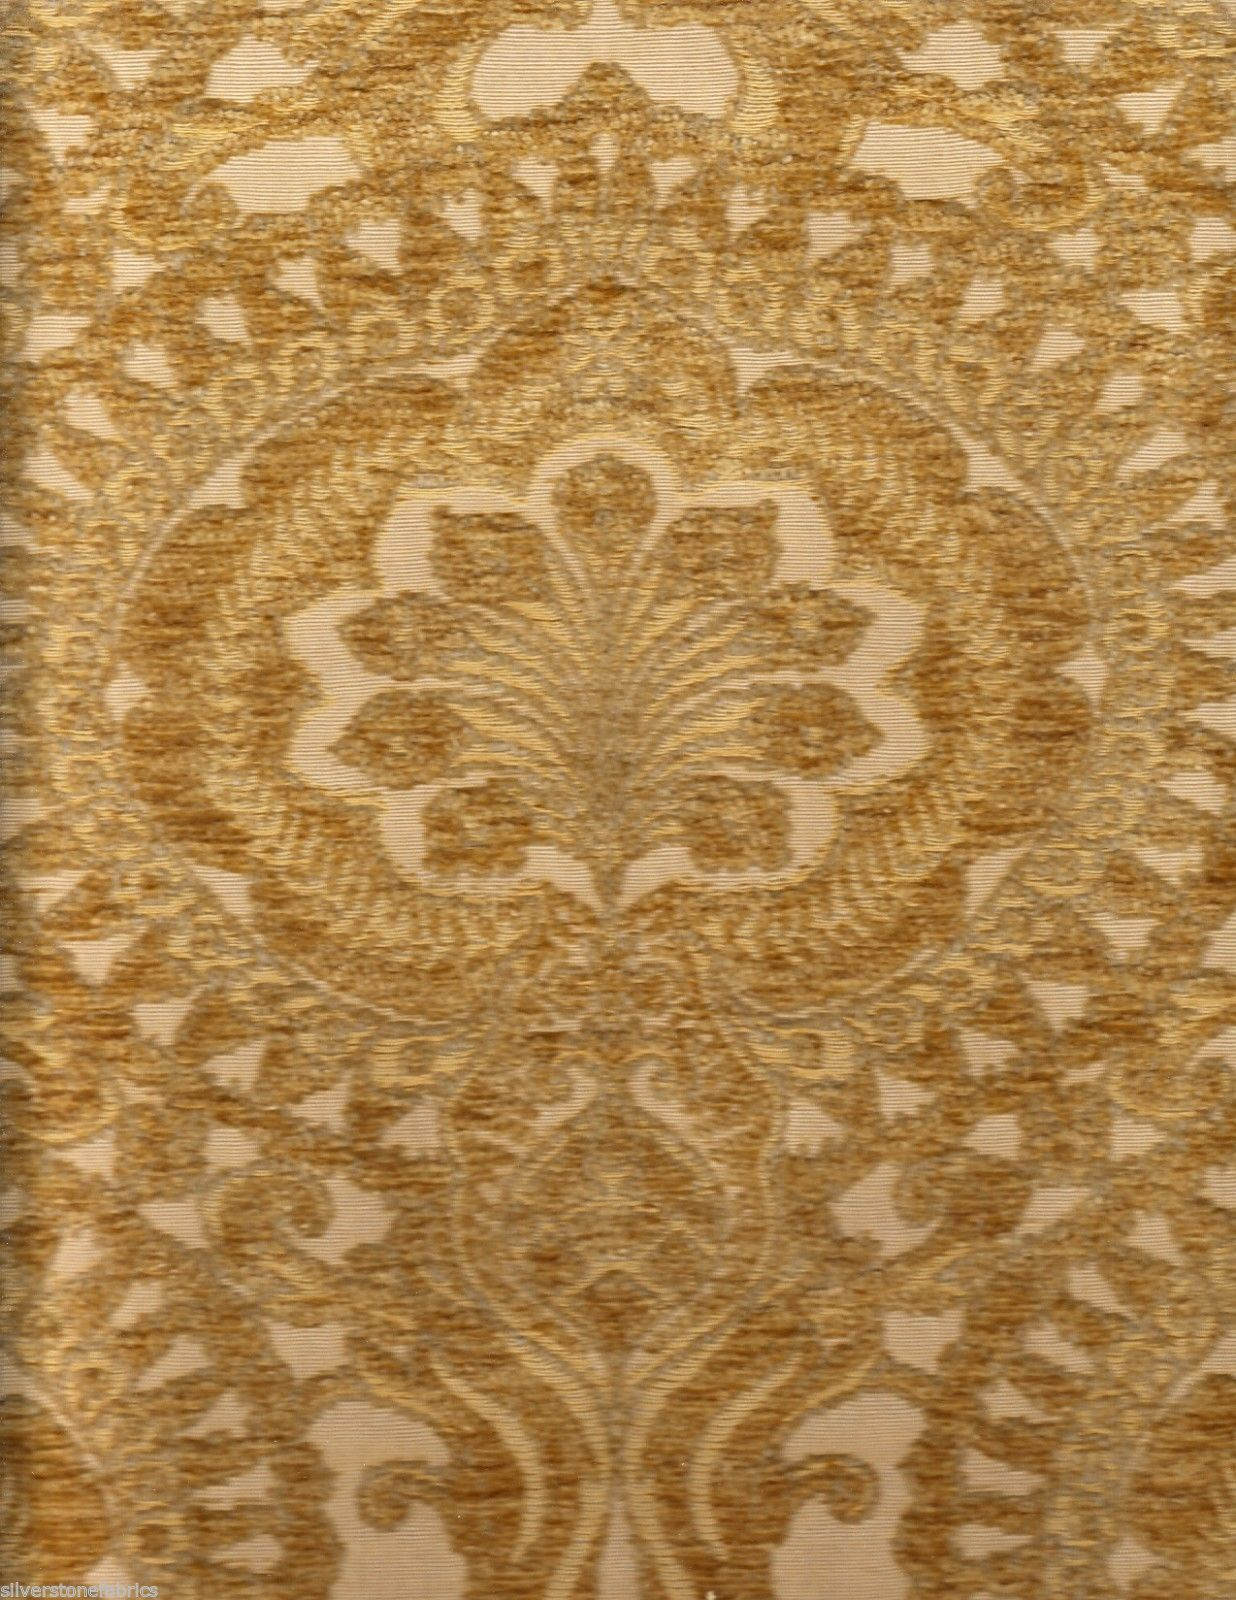 Beacon Hill Upholstery Fabric Lalonde Burnished Gold Floral 162030 15.125yds DG2